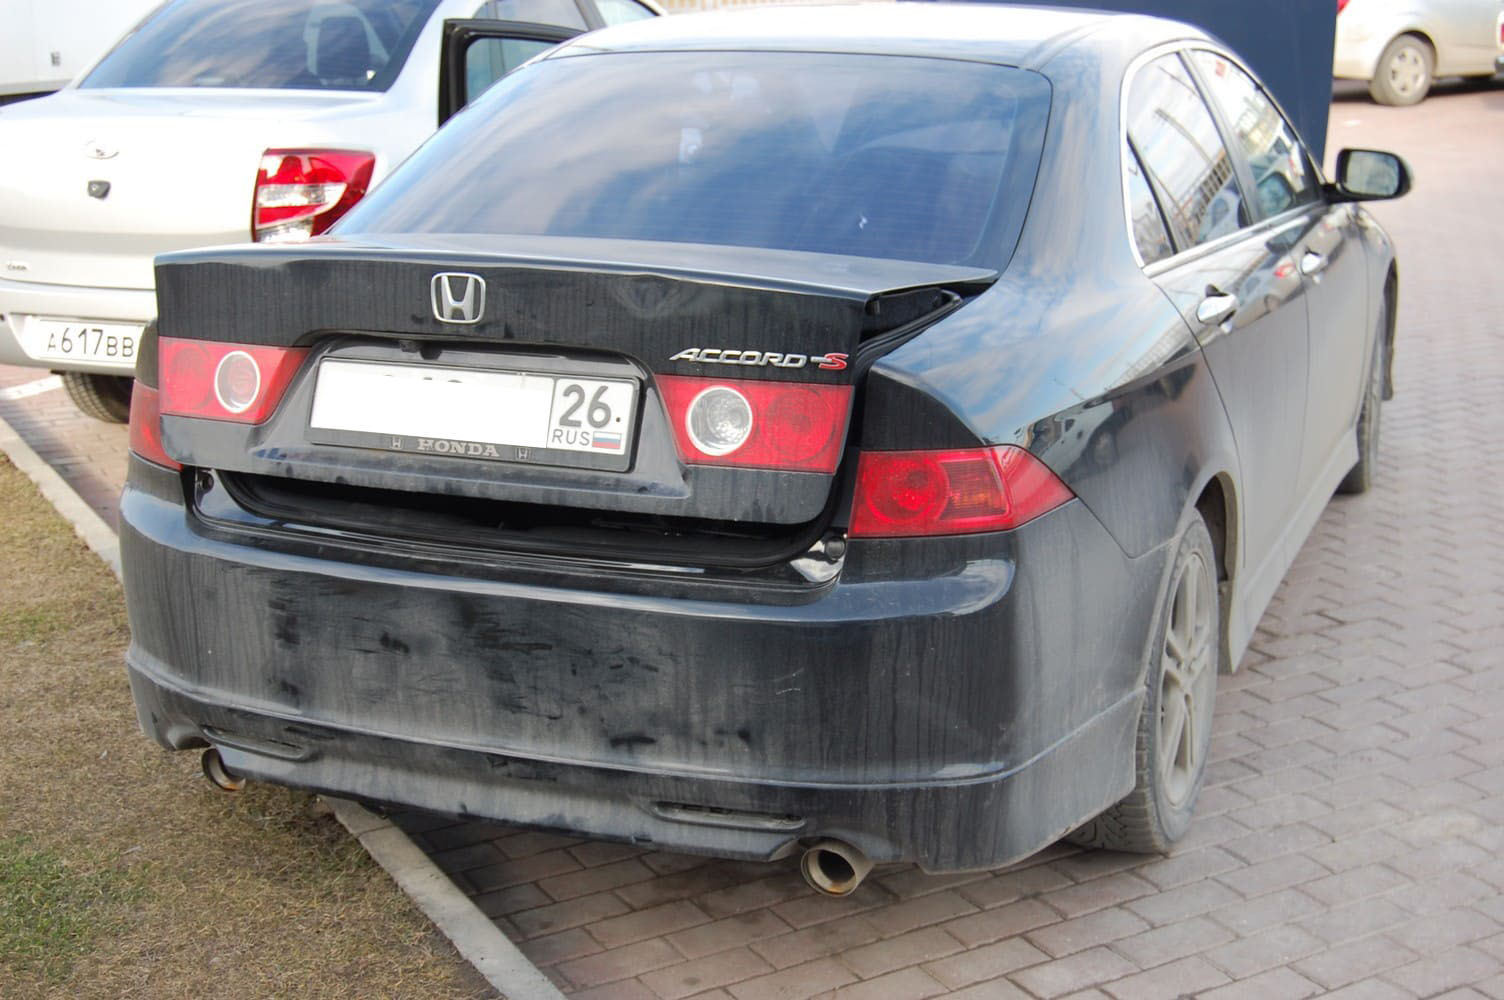 Honda Accord 7 (2002-2006) 2.4 л.